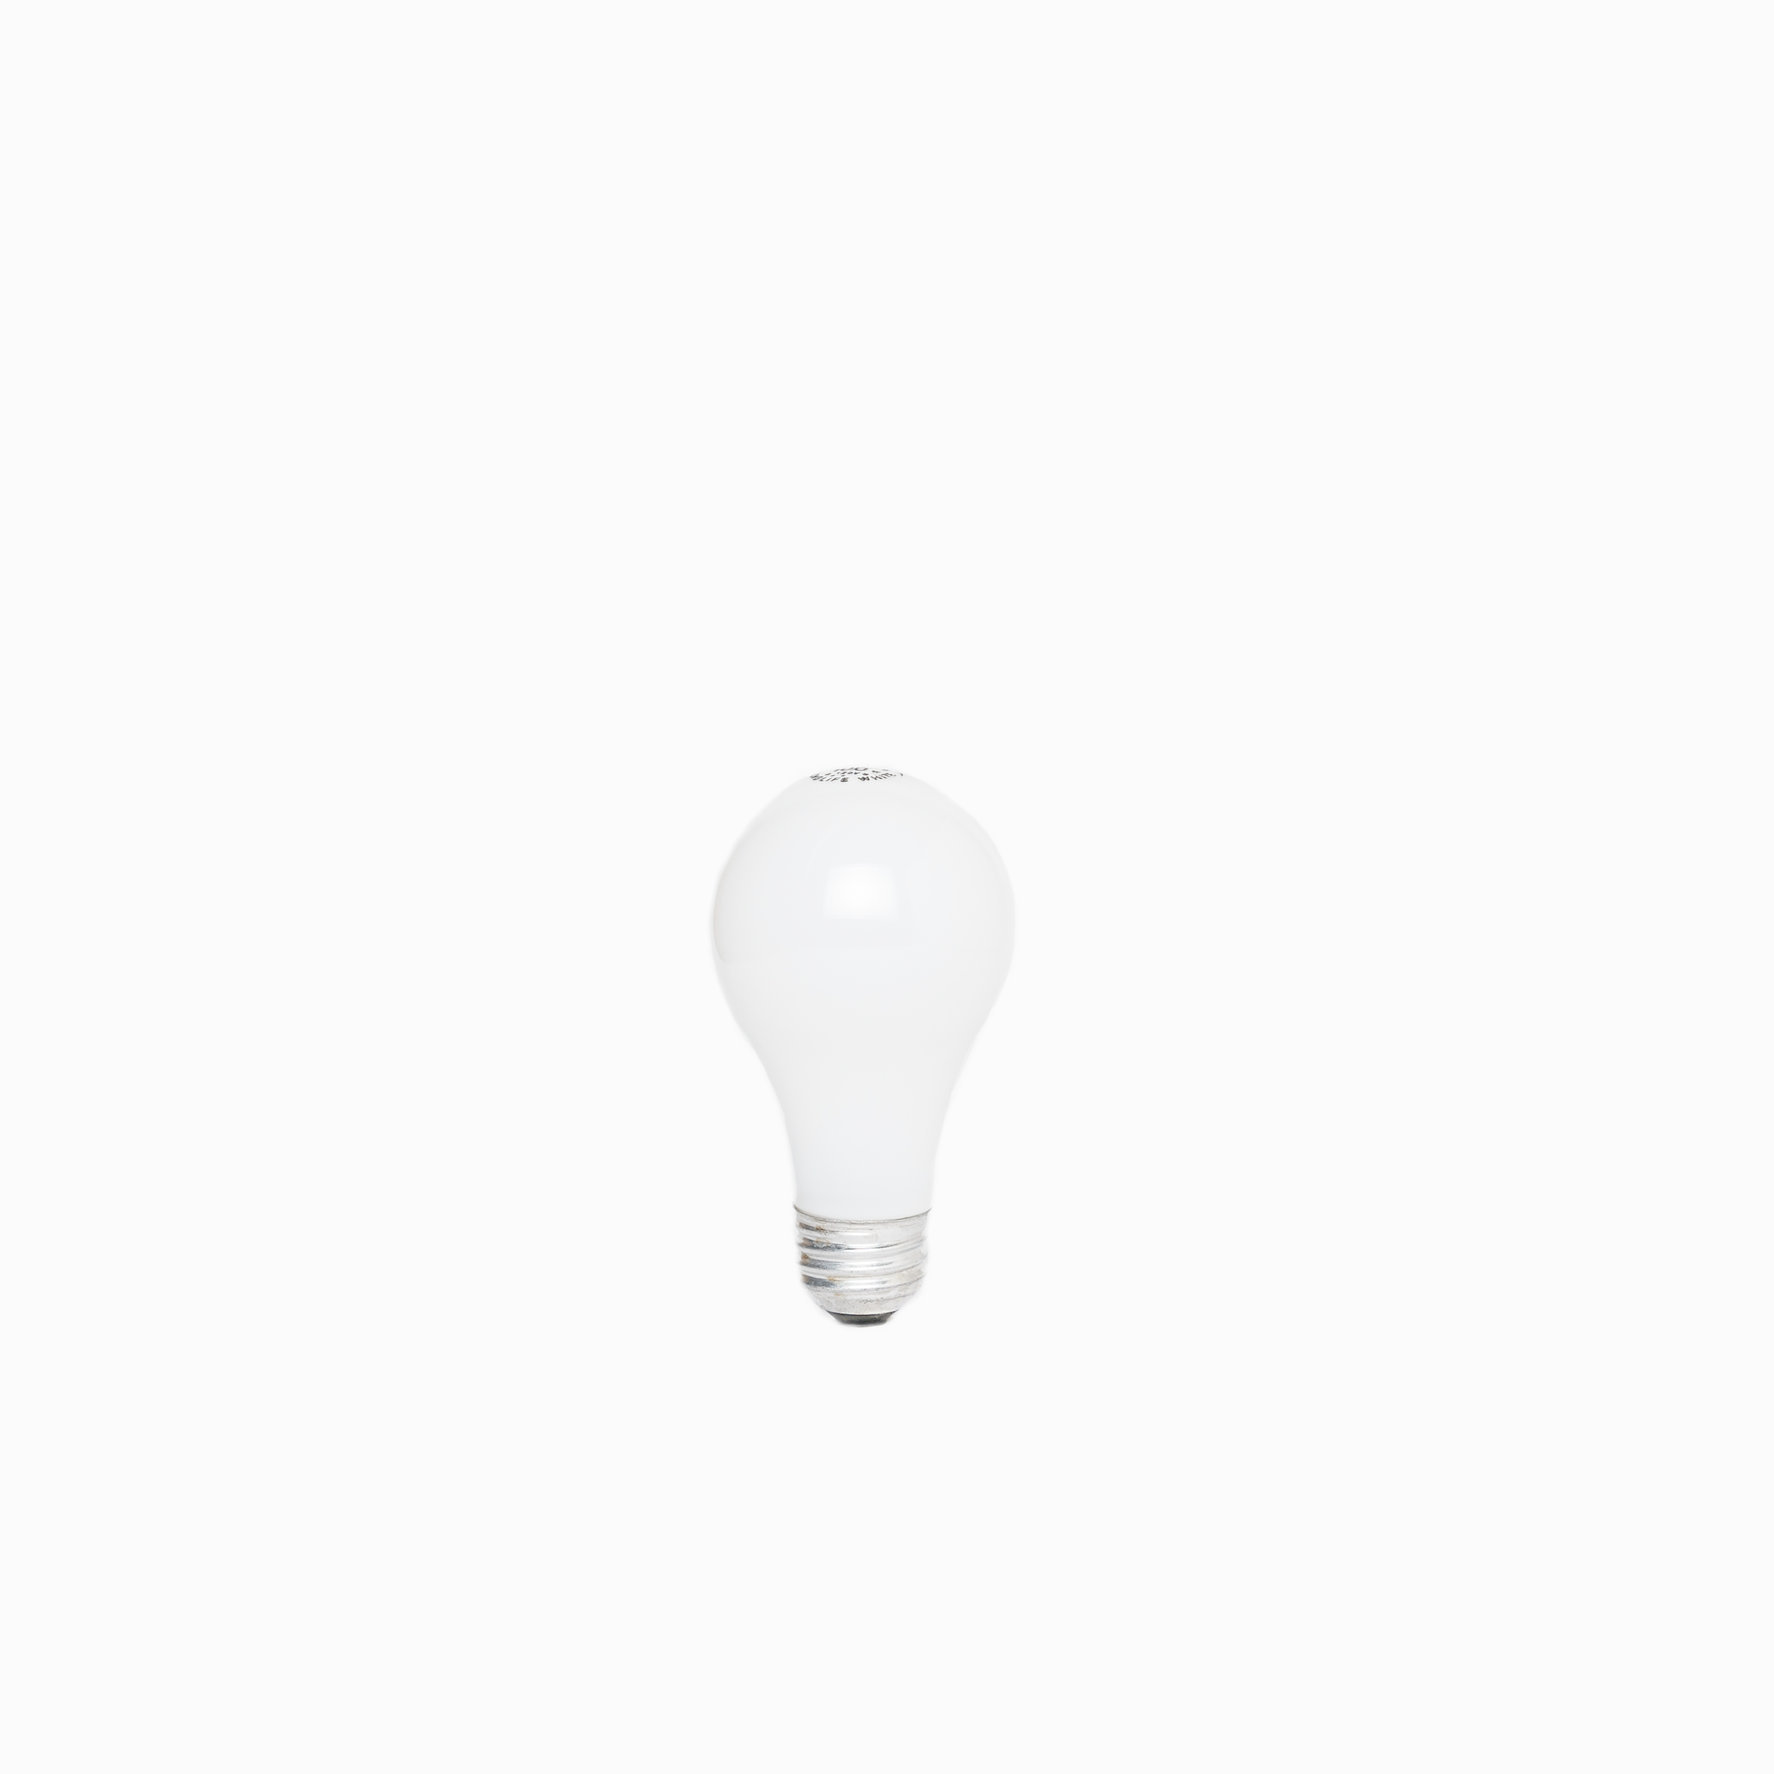 2016-4-Lightbulb.jpg